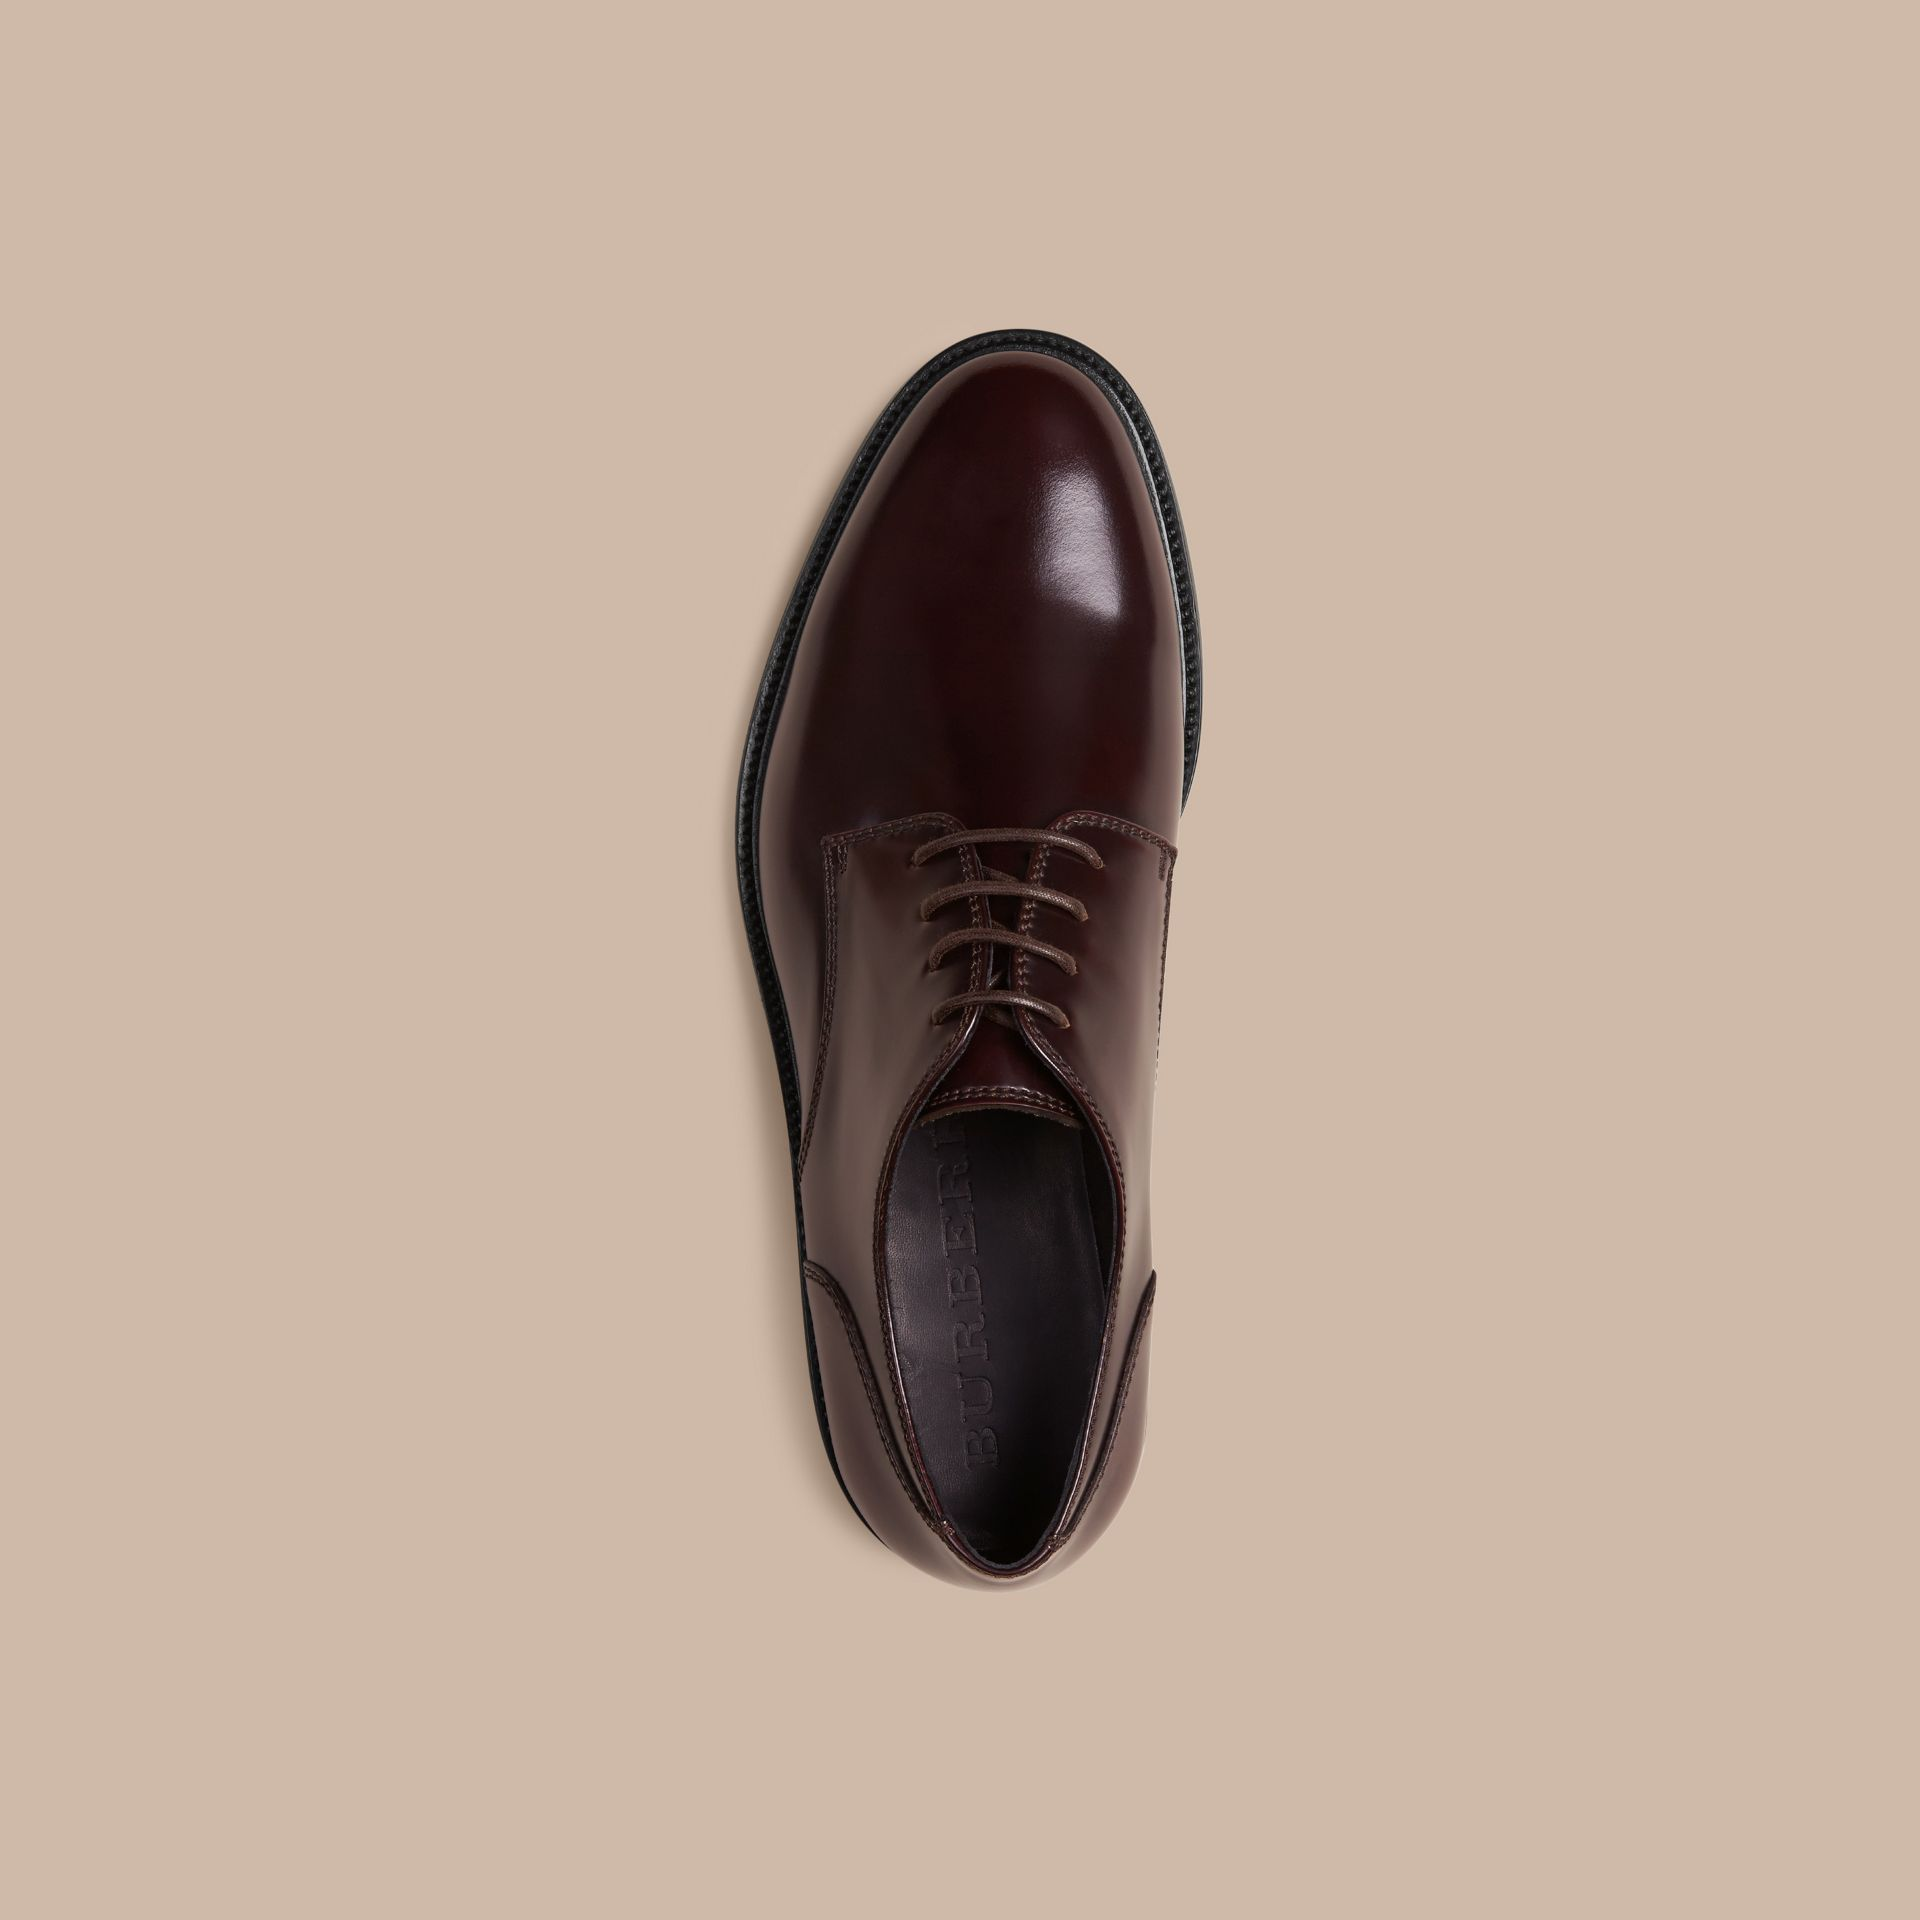 Oxblood Leather Derby Shoes Oxblood - gallery image 3